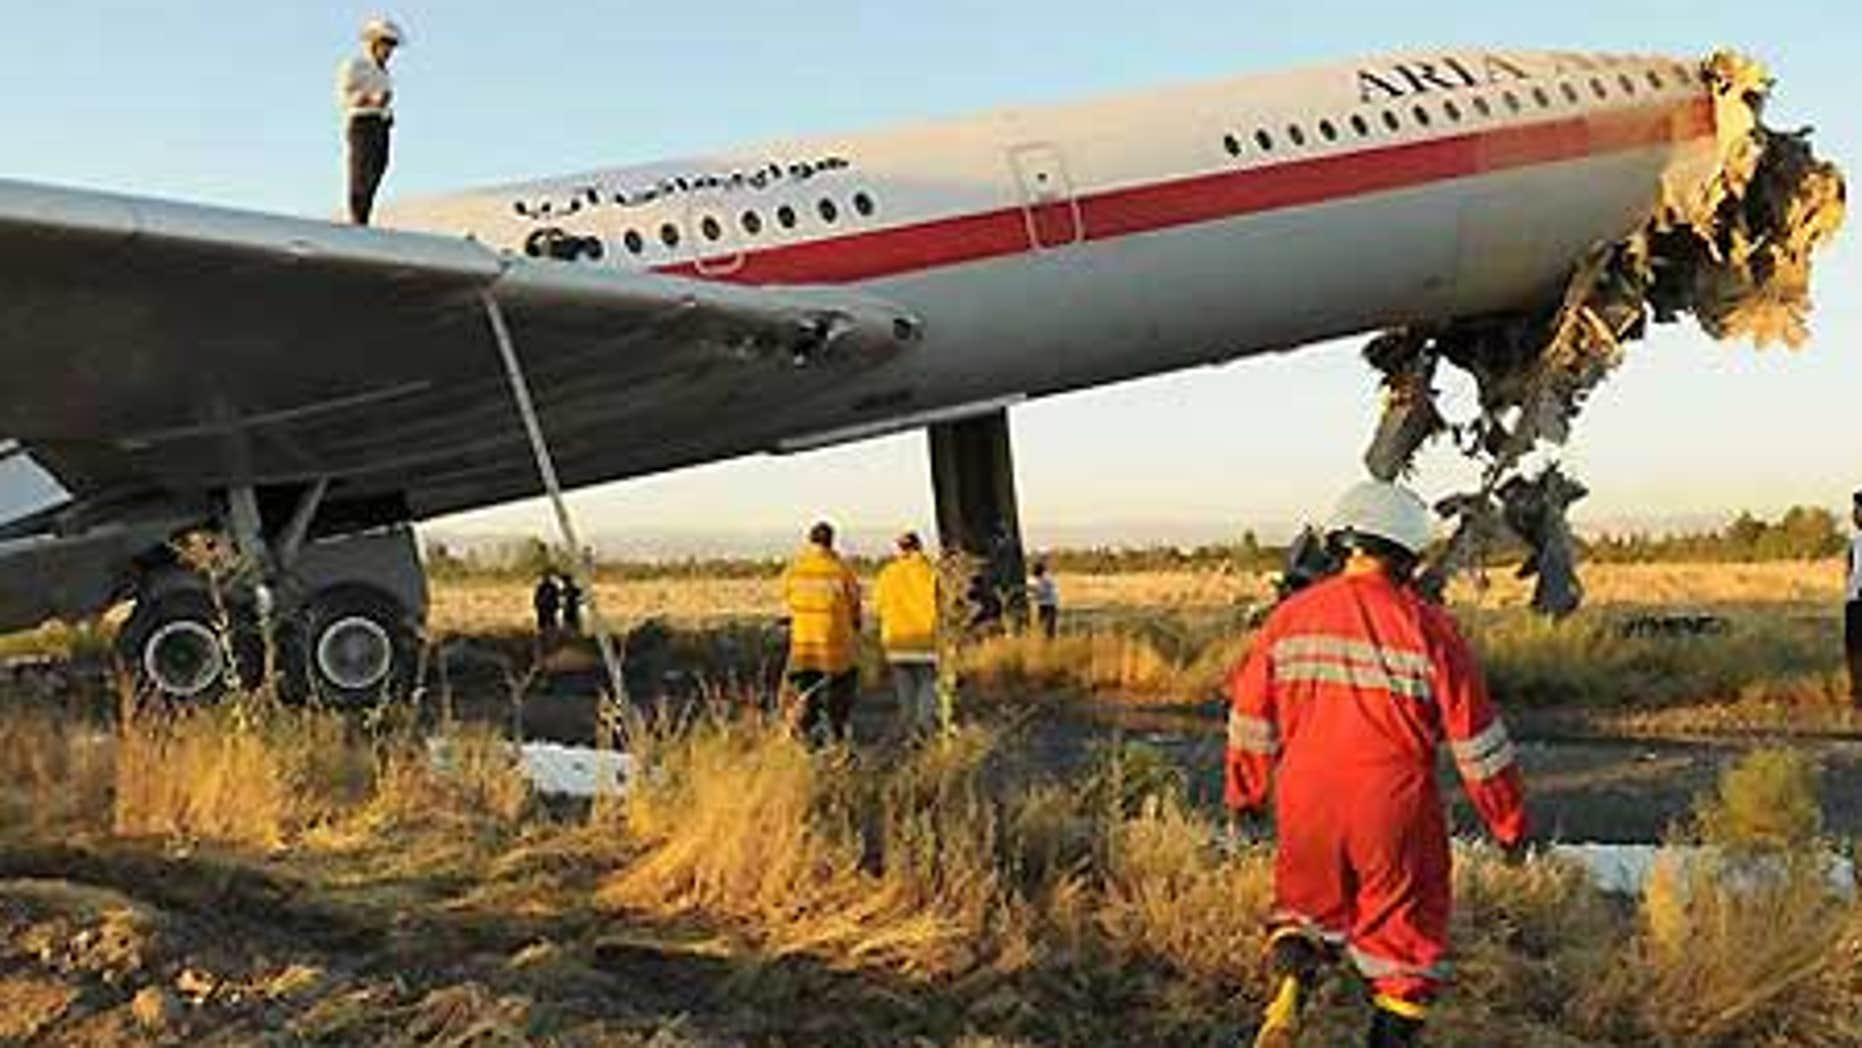 July 24: Emergency workers at the scene of an Iranian passenger plane crash just off the runway at the airport in Mashhad, northeast of Tehran, Iran.